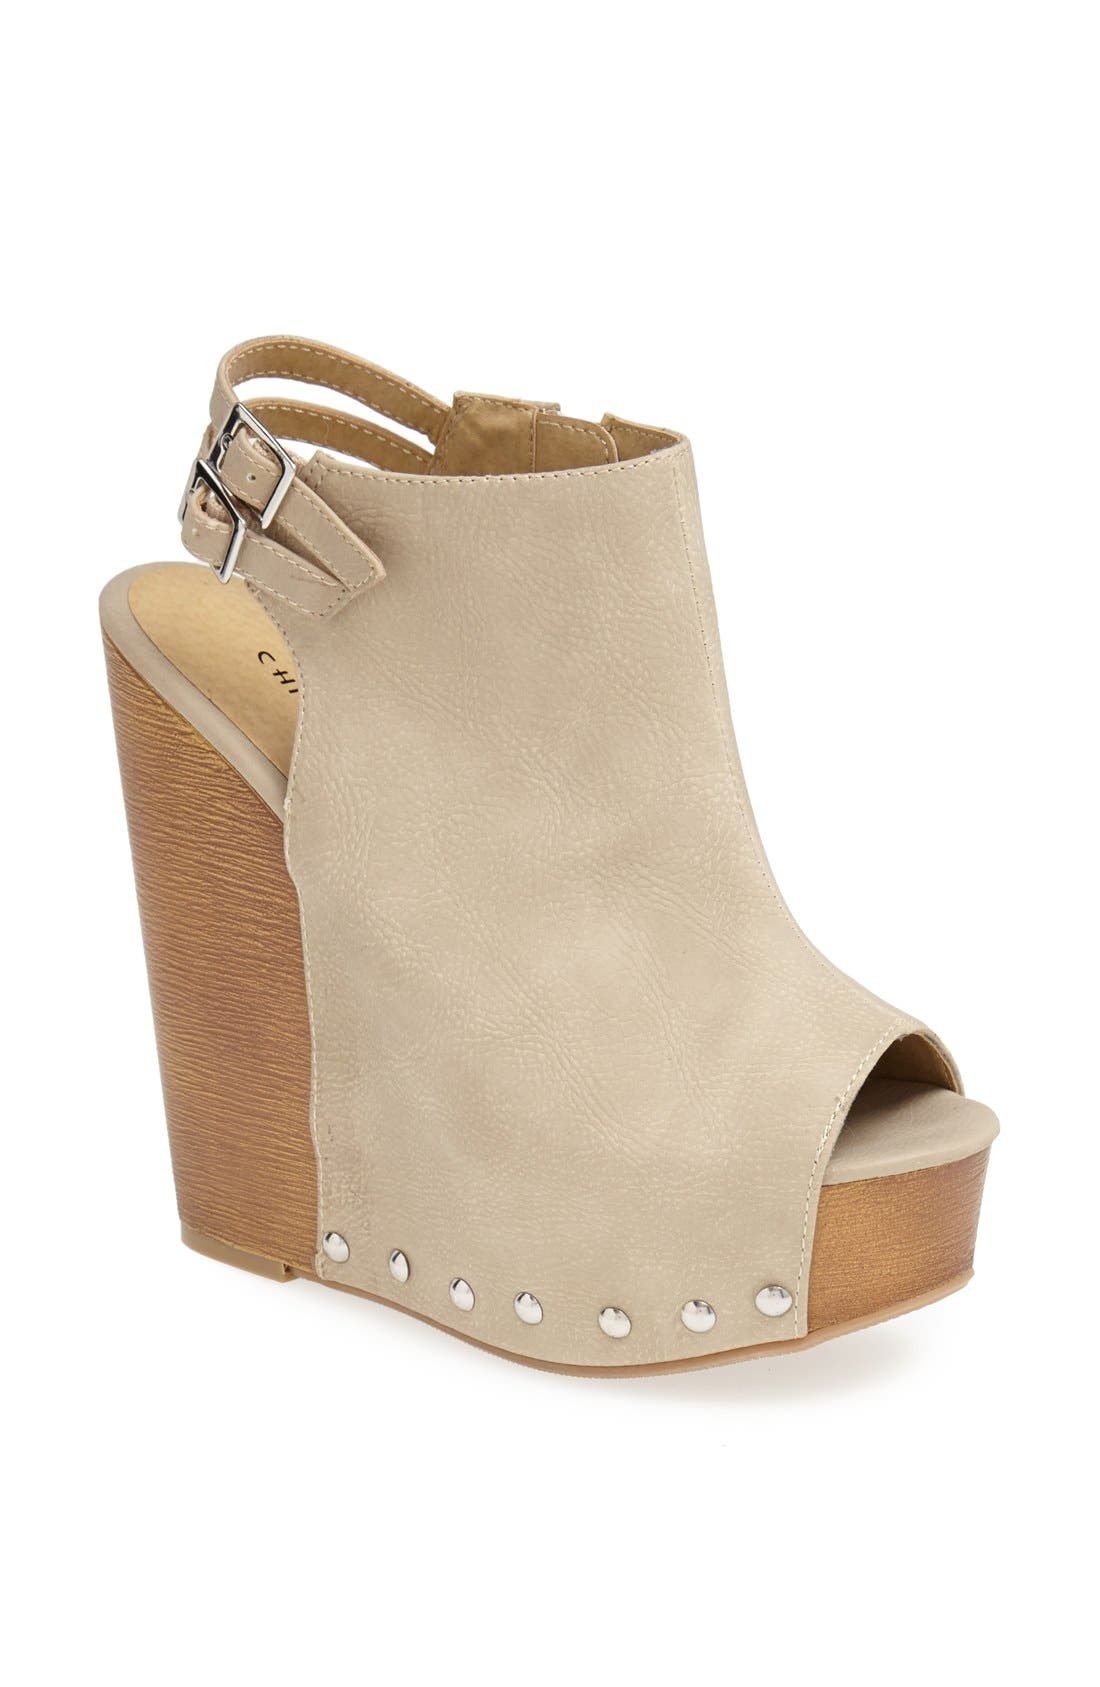 Main Image - Chinese Laundry 'Jeepers' Wedge Sandal